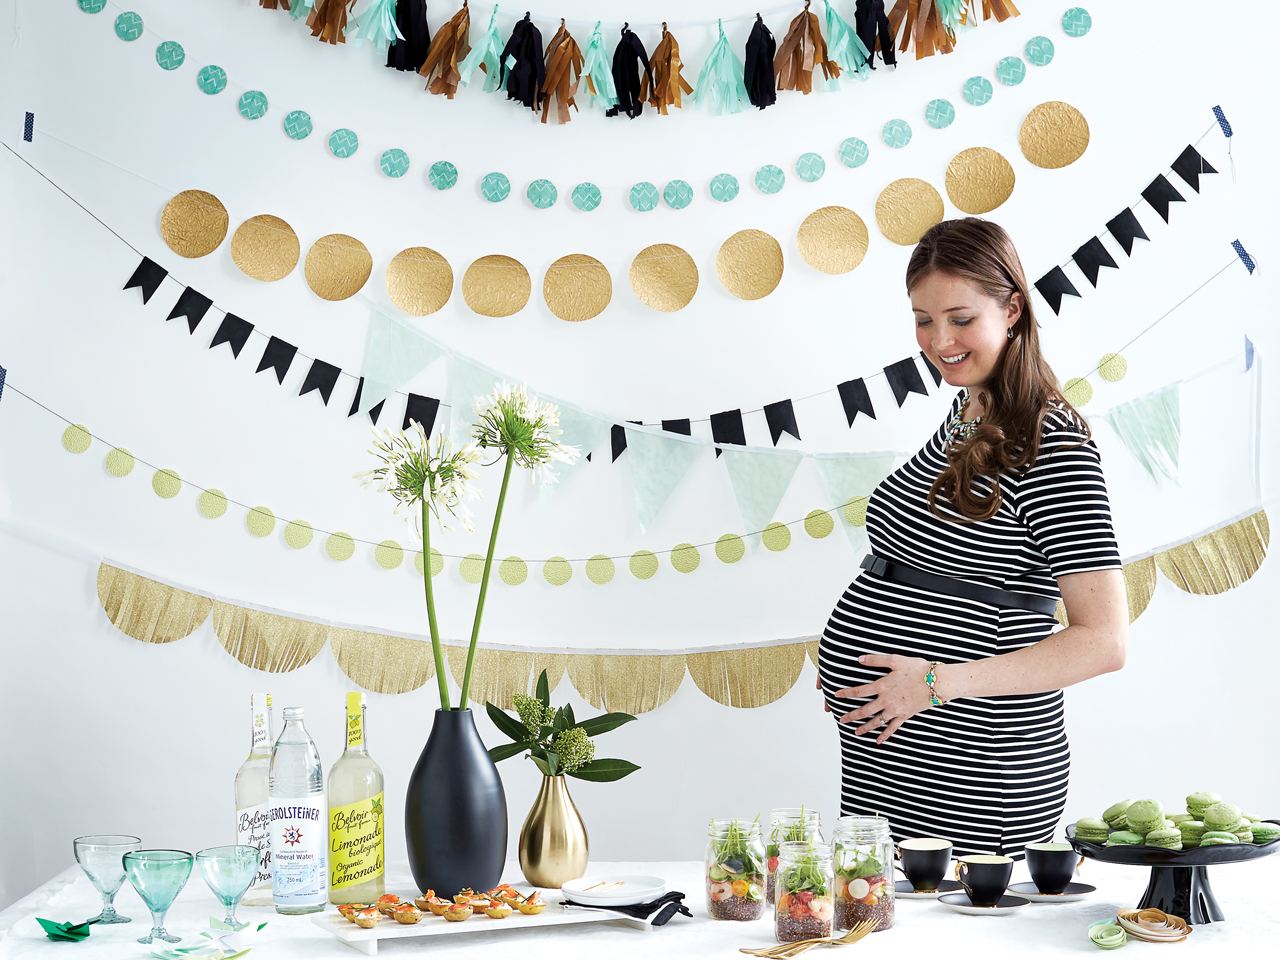 17 baby shower recipes today 39 s parent